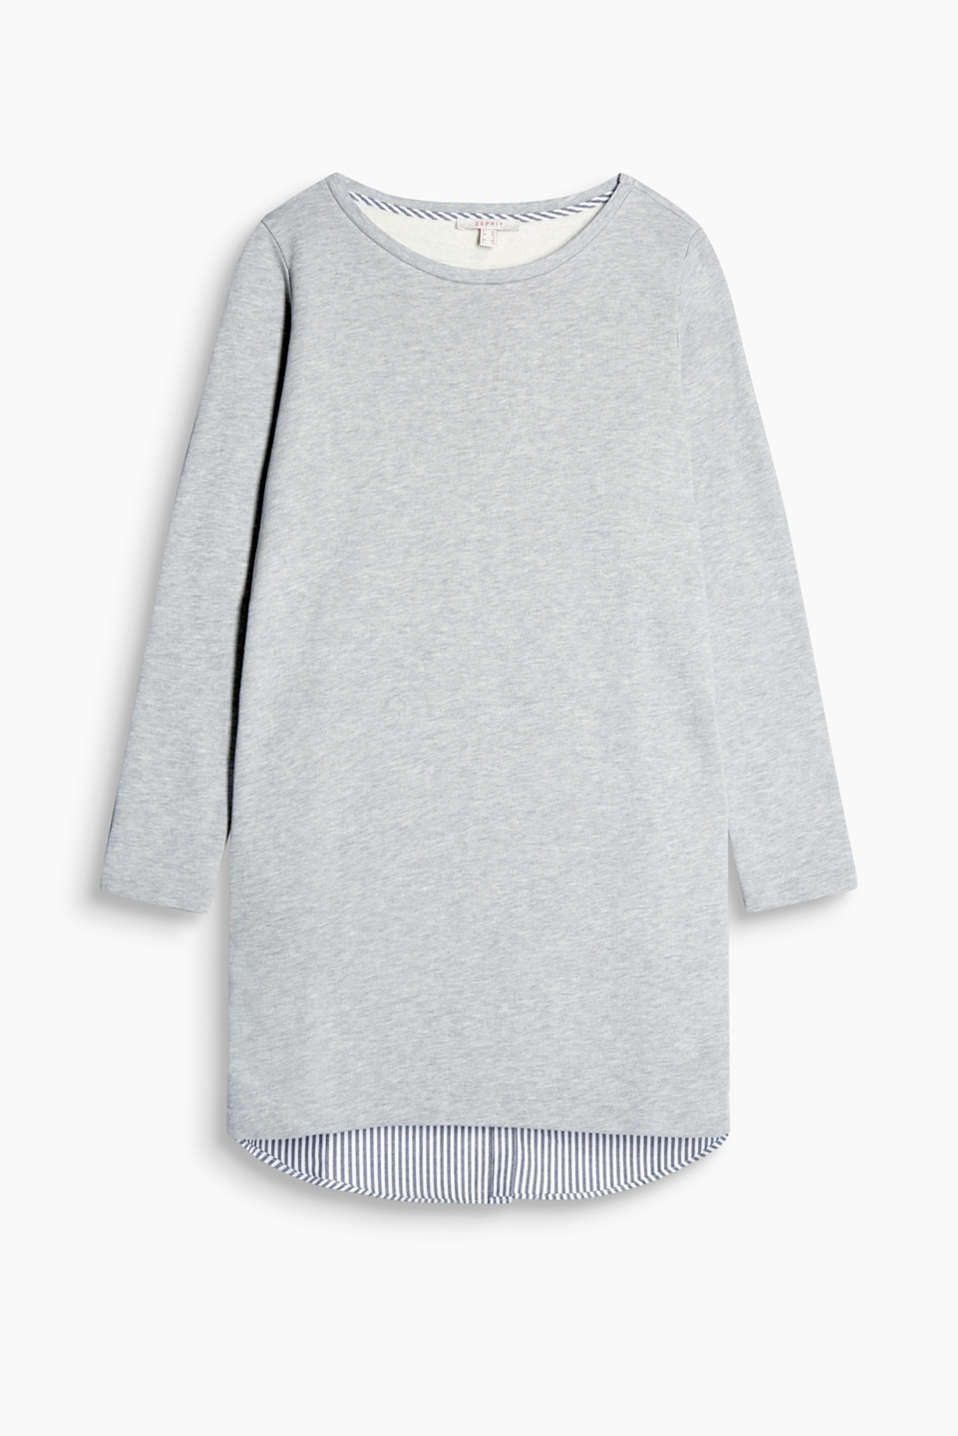 Casual dress with a sweatshirt front and a back made of striped cloth, blended cotton